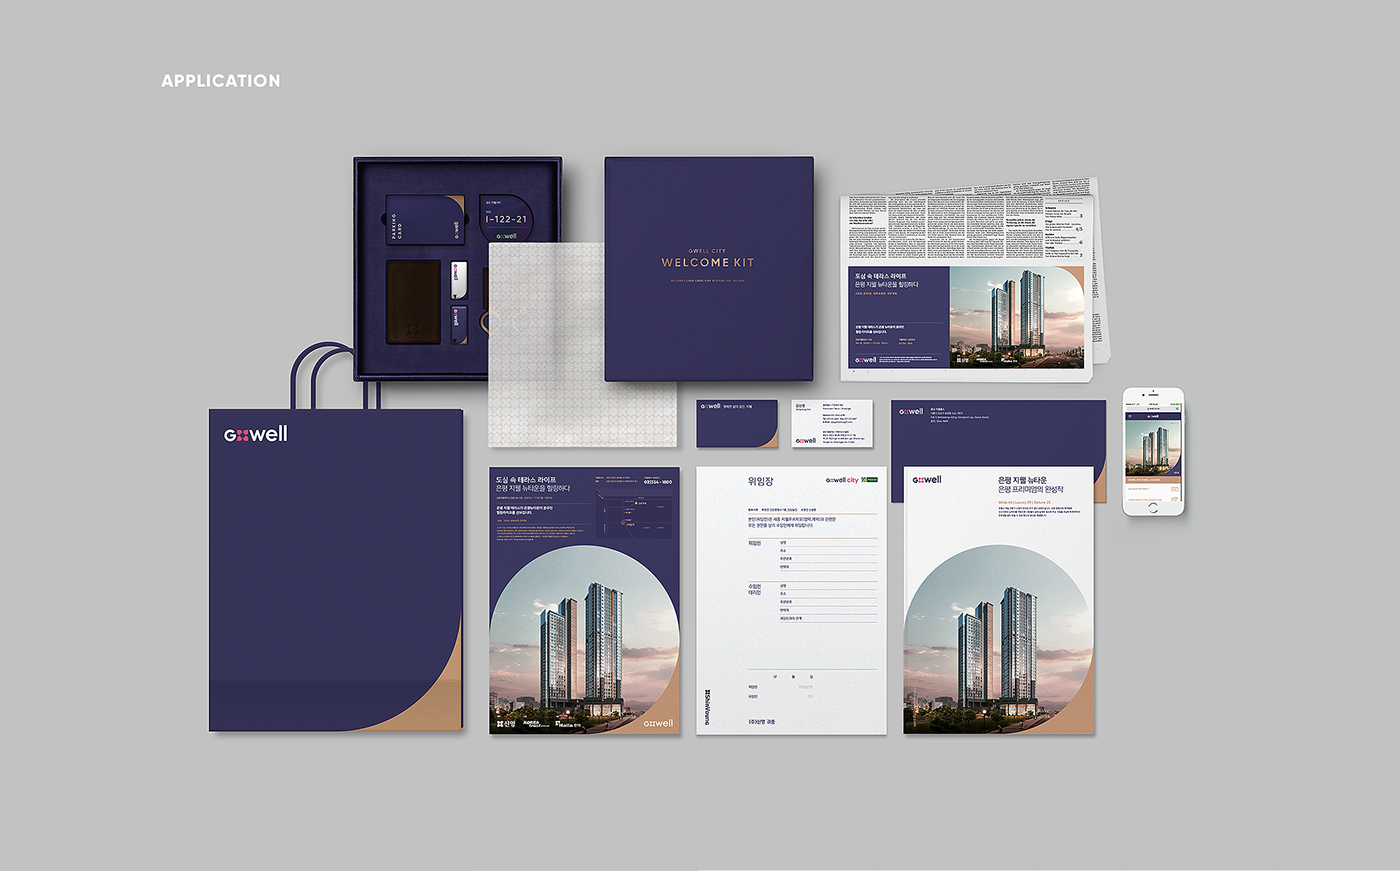 Gwell brand experience design renewal on behance for Daily design news